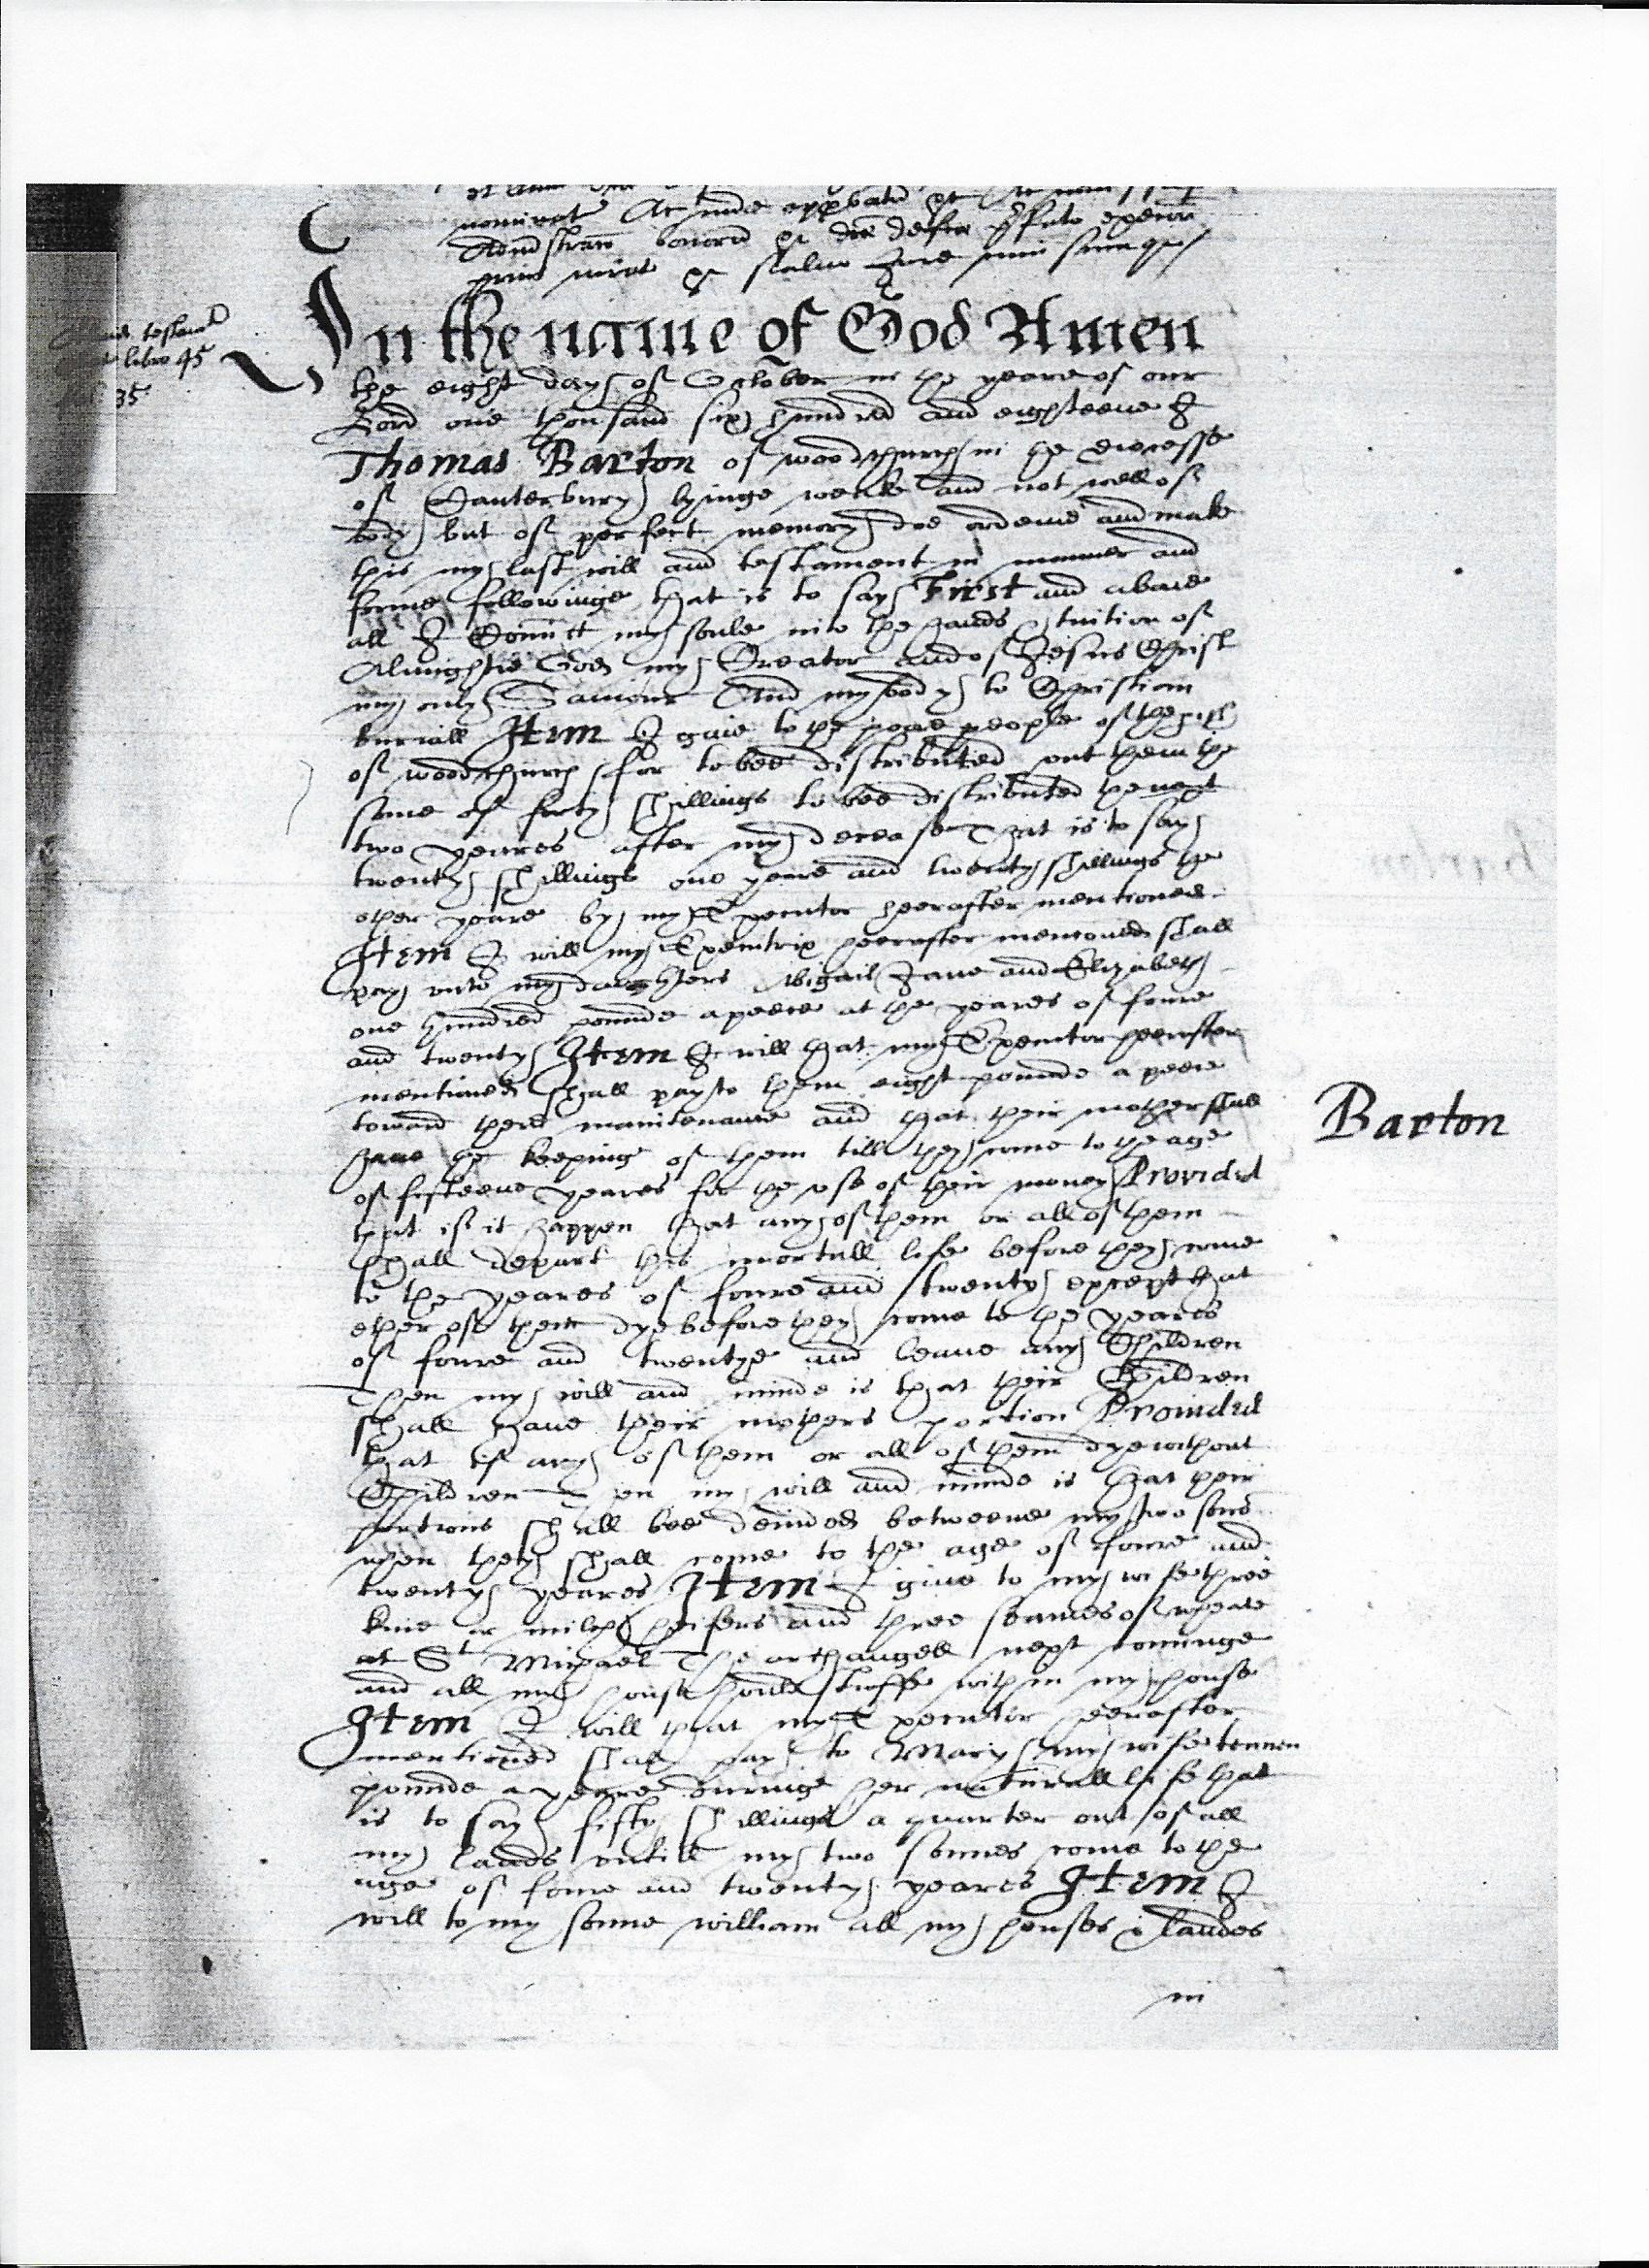 Thomas Barton (   -bur1618) Probate of Estate